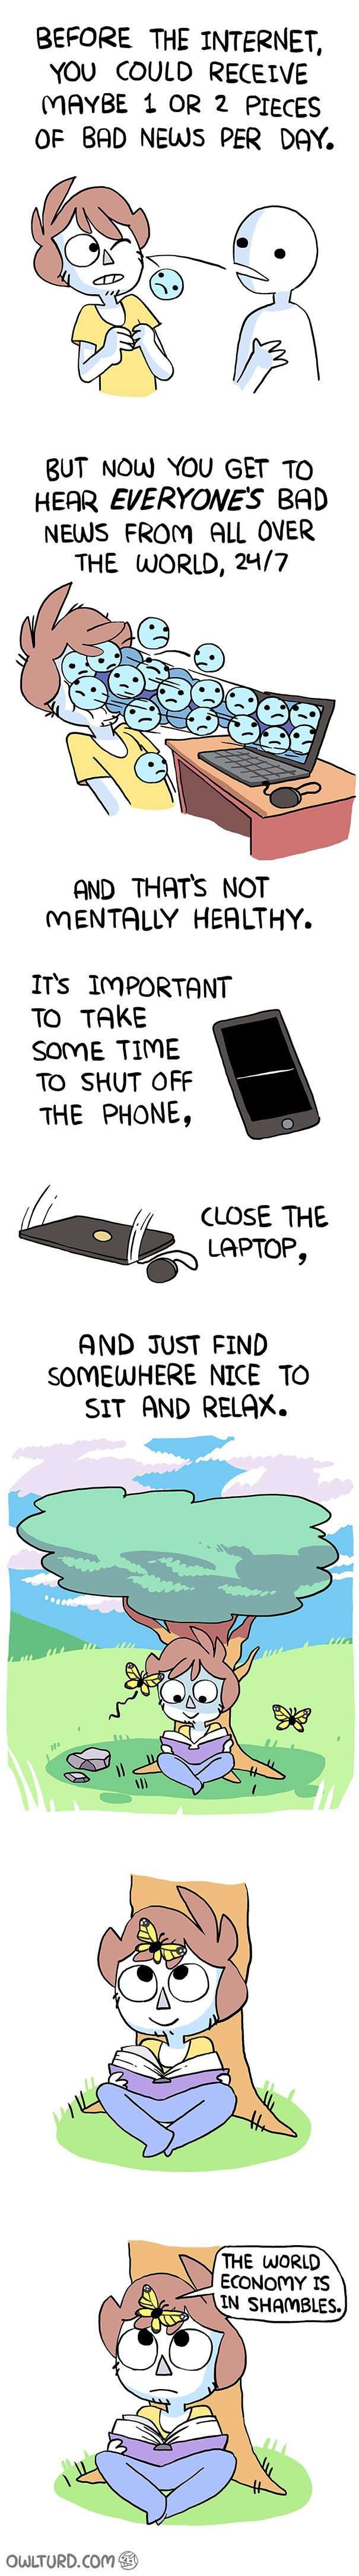 This is very true. Give yourself a break from technology once in a while.